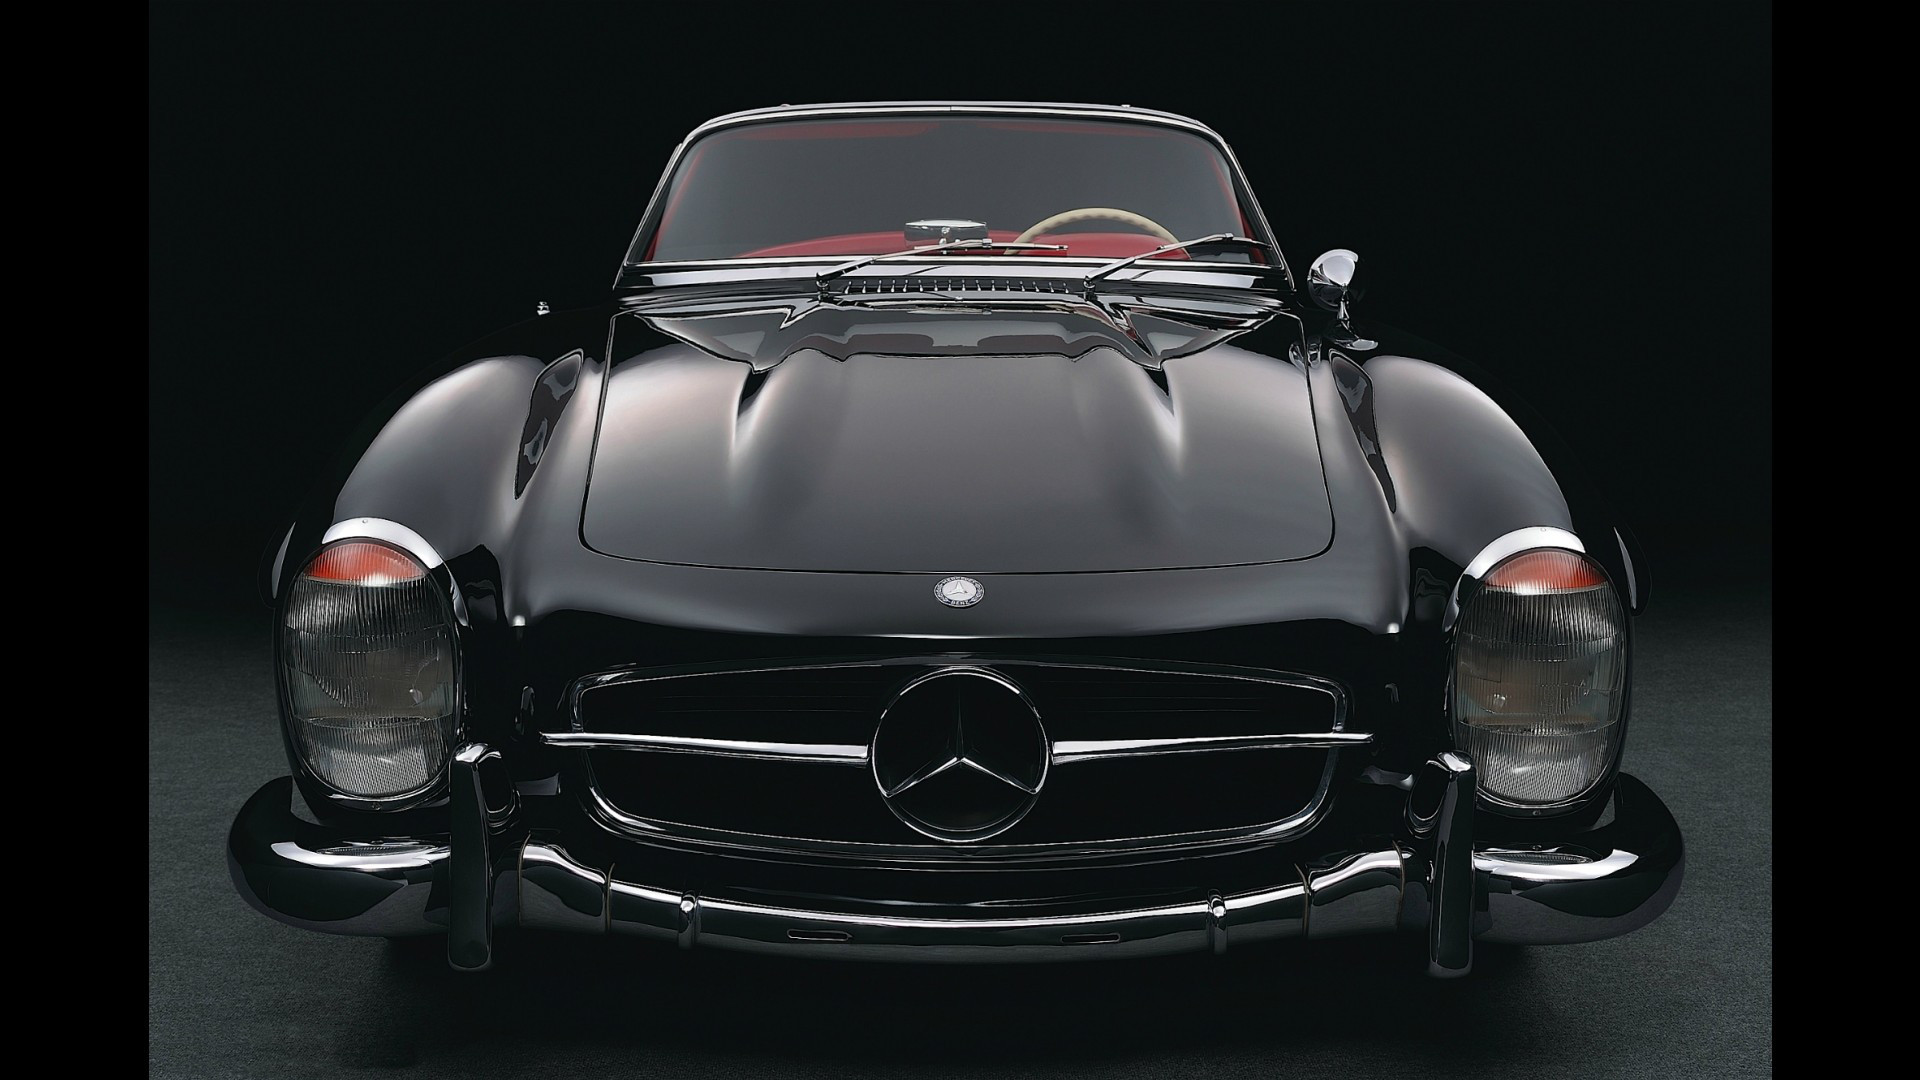 Mercedes classic car repair and restorations